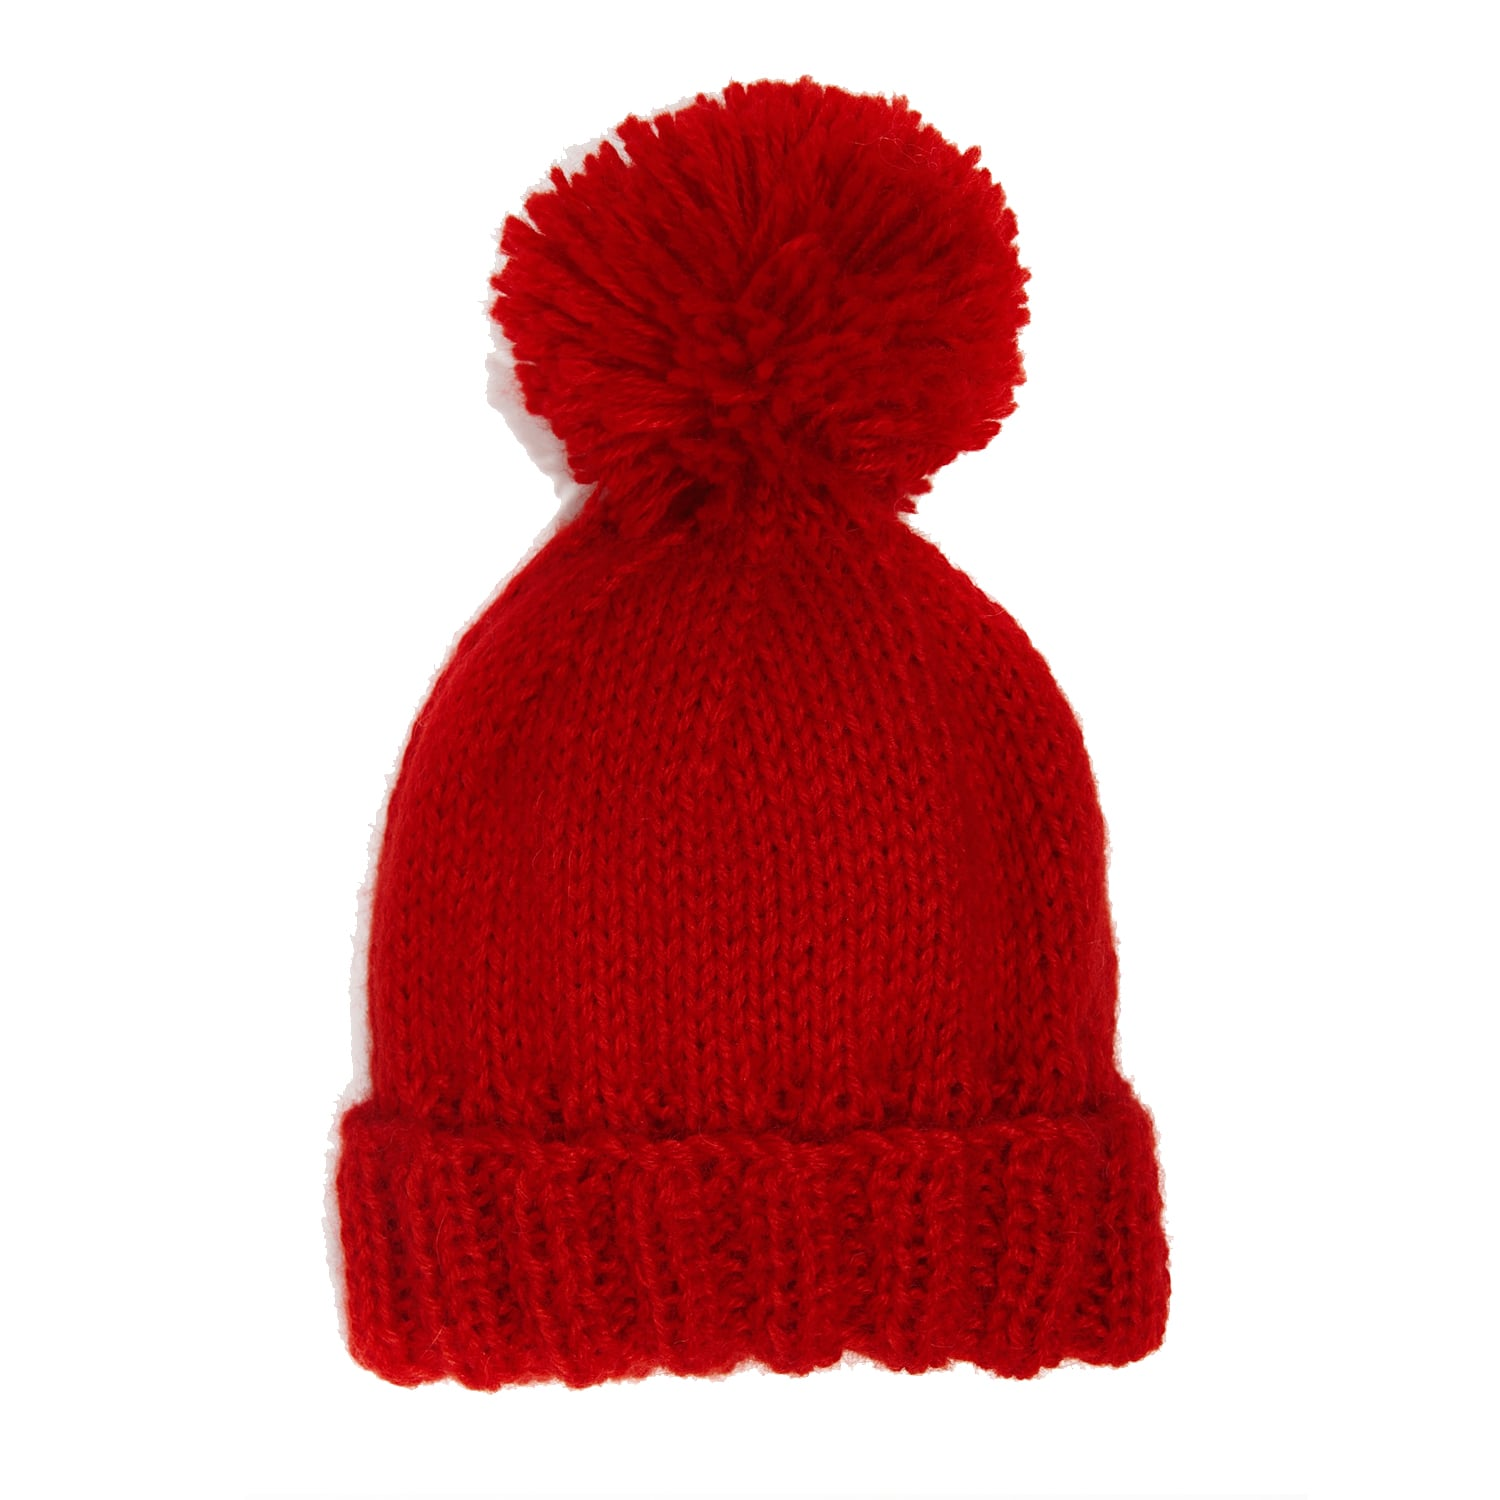 Bobble Hat Red  7ede8b5f6bef